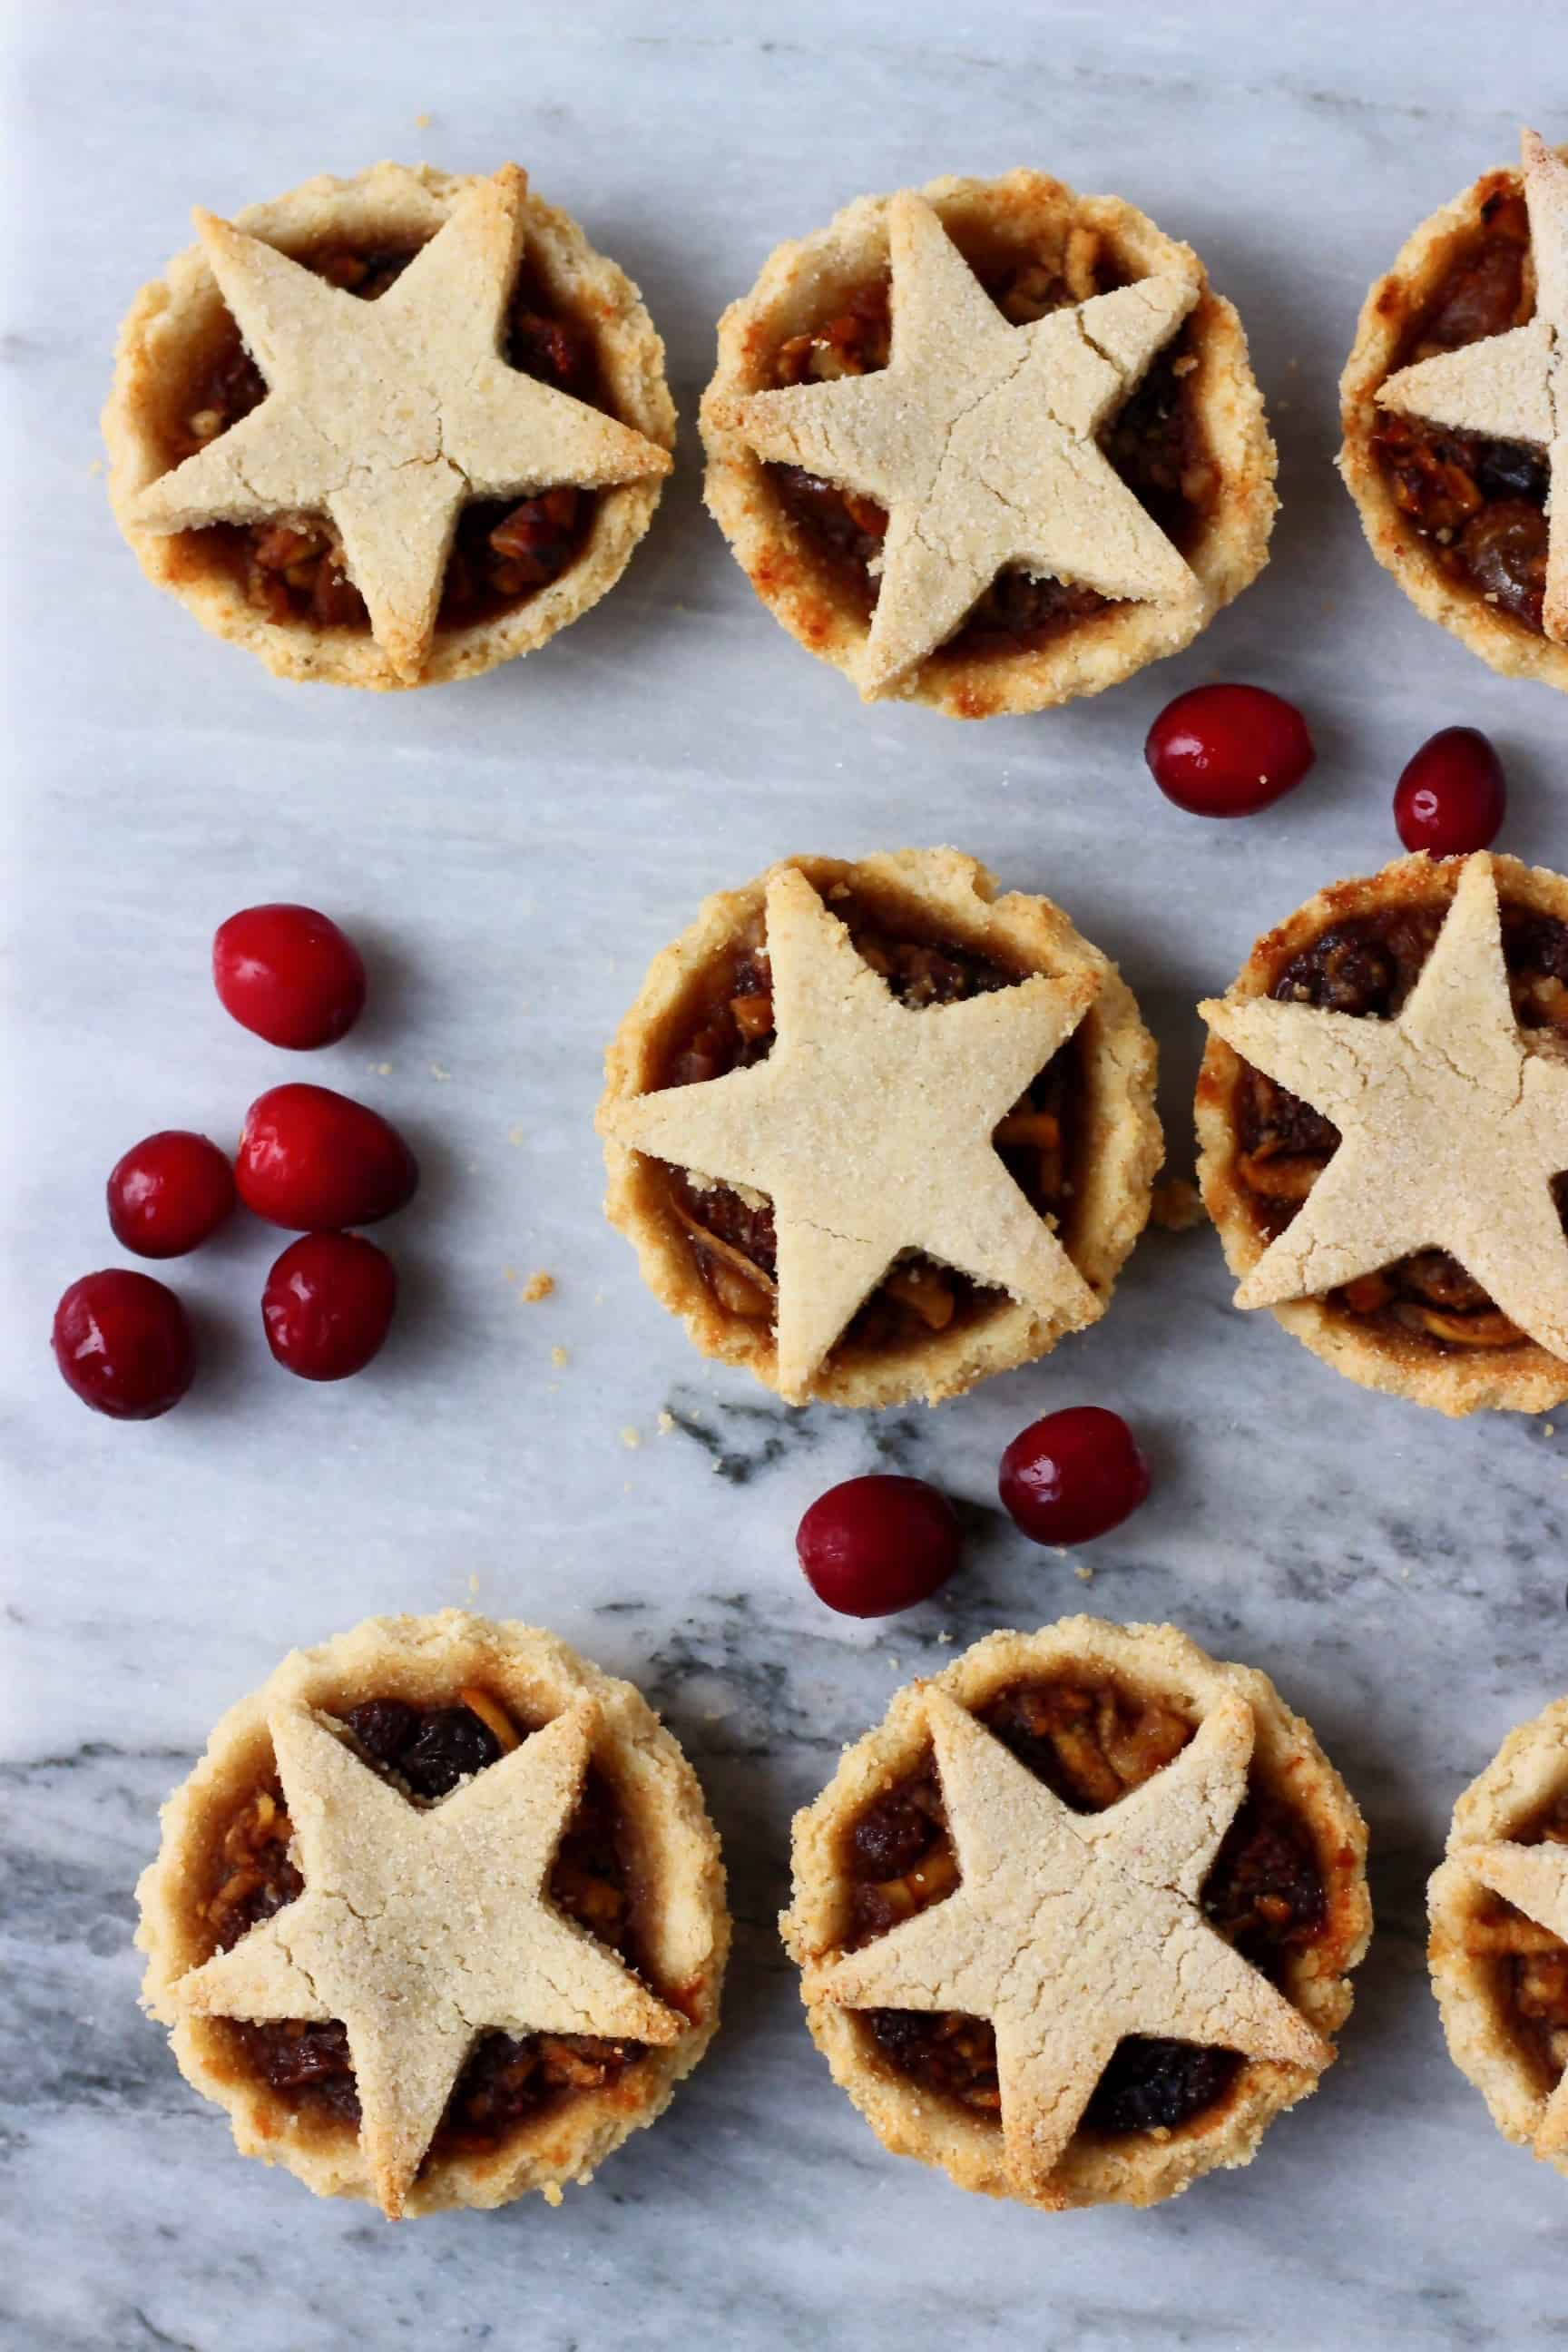 Six gluten-free vegan mince pies topped with pastry stars against a marble background